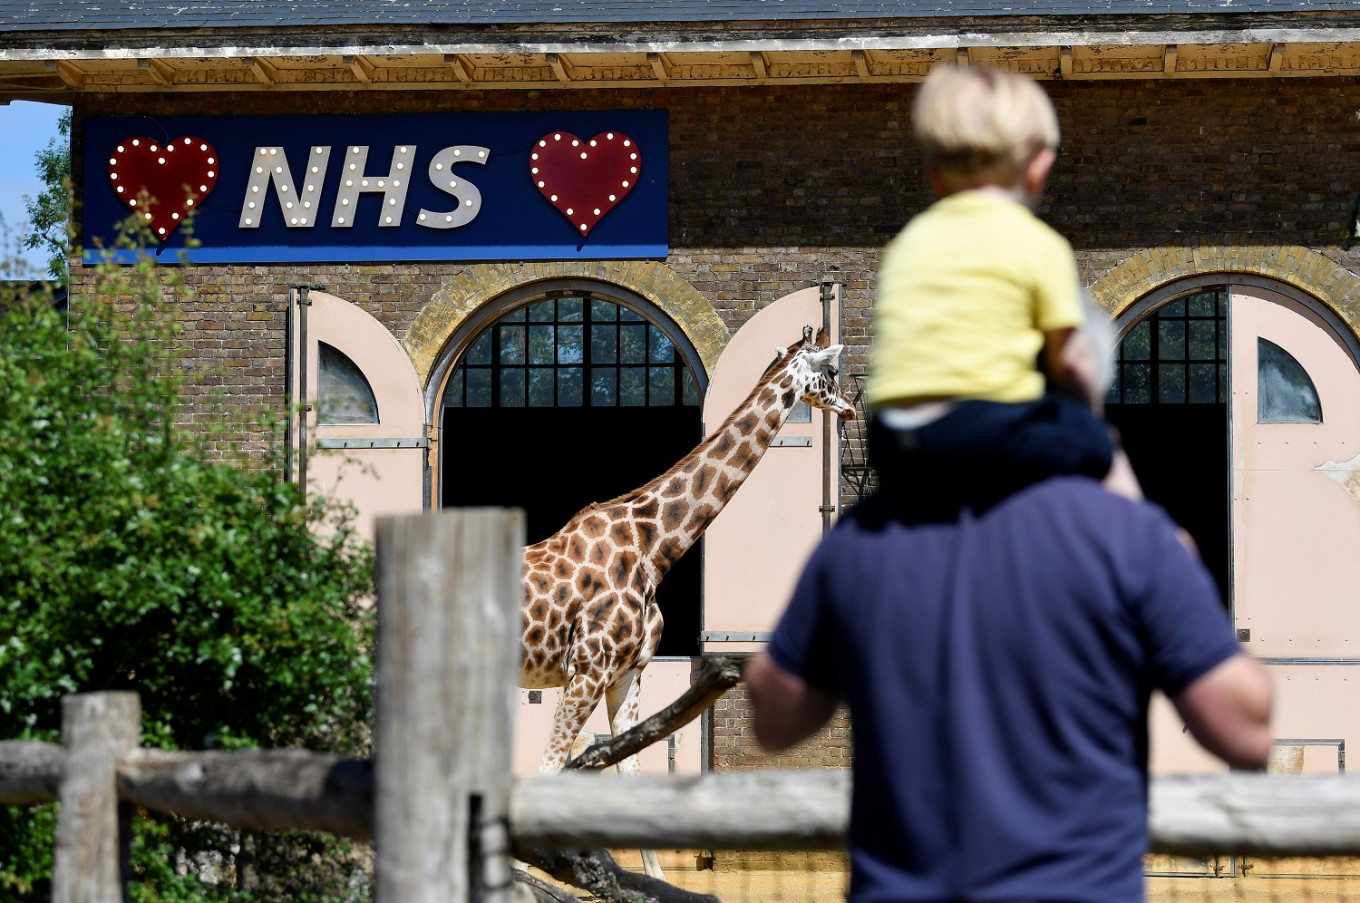 London Zoo reopens after lockdown, but with limits in place